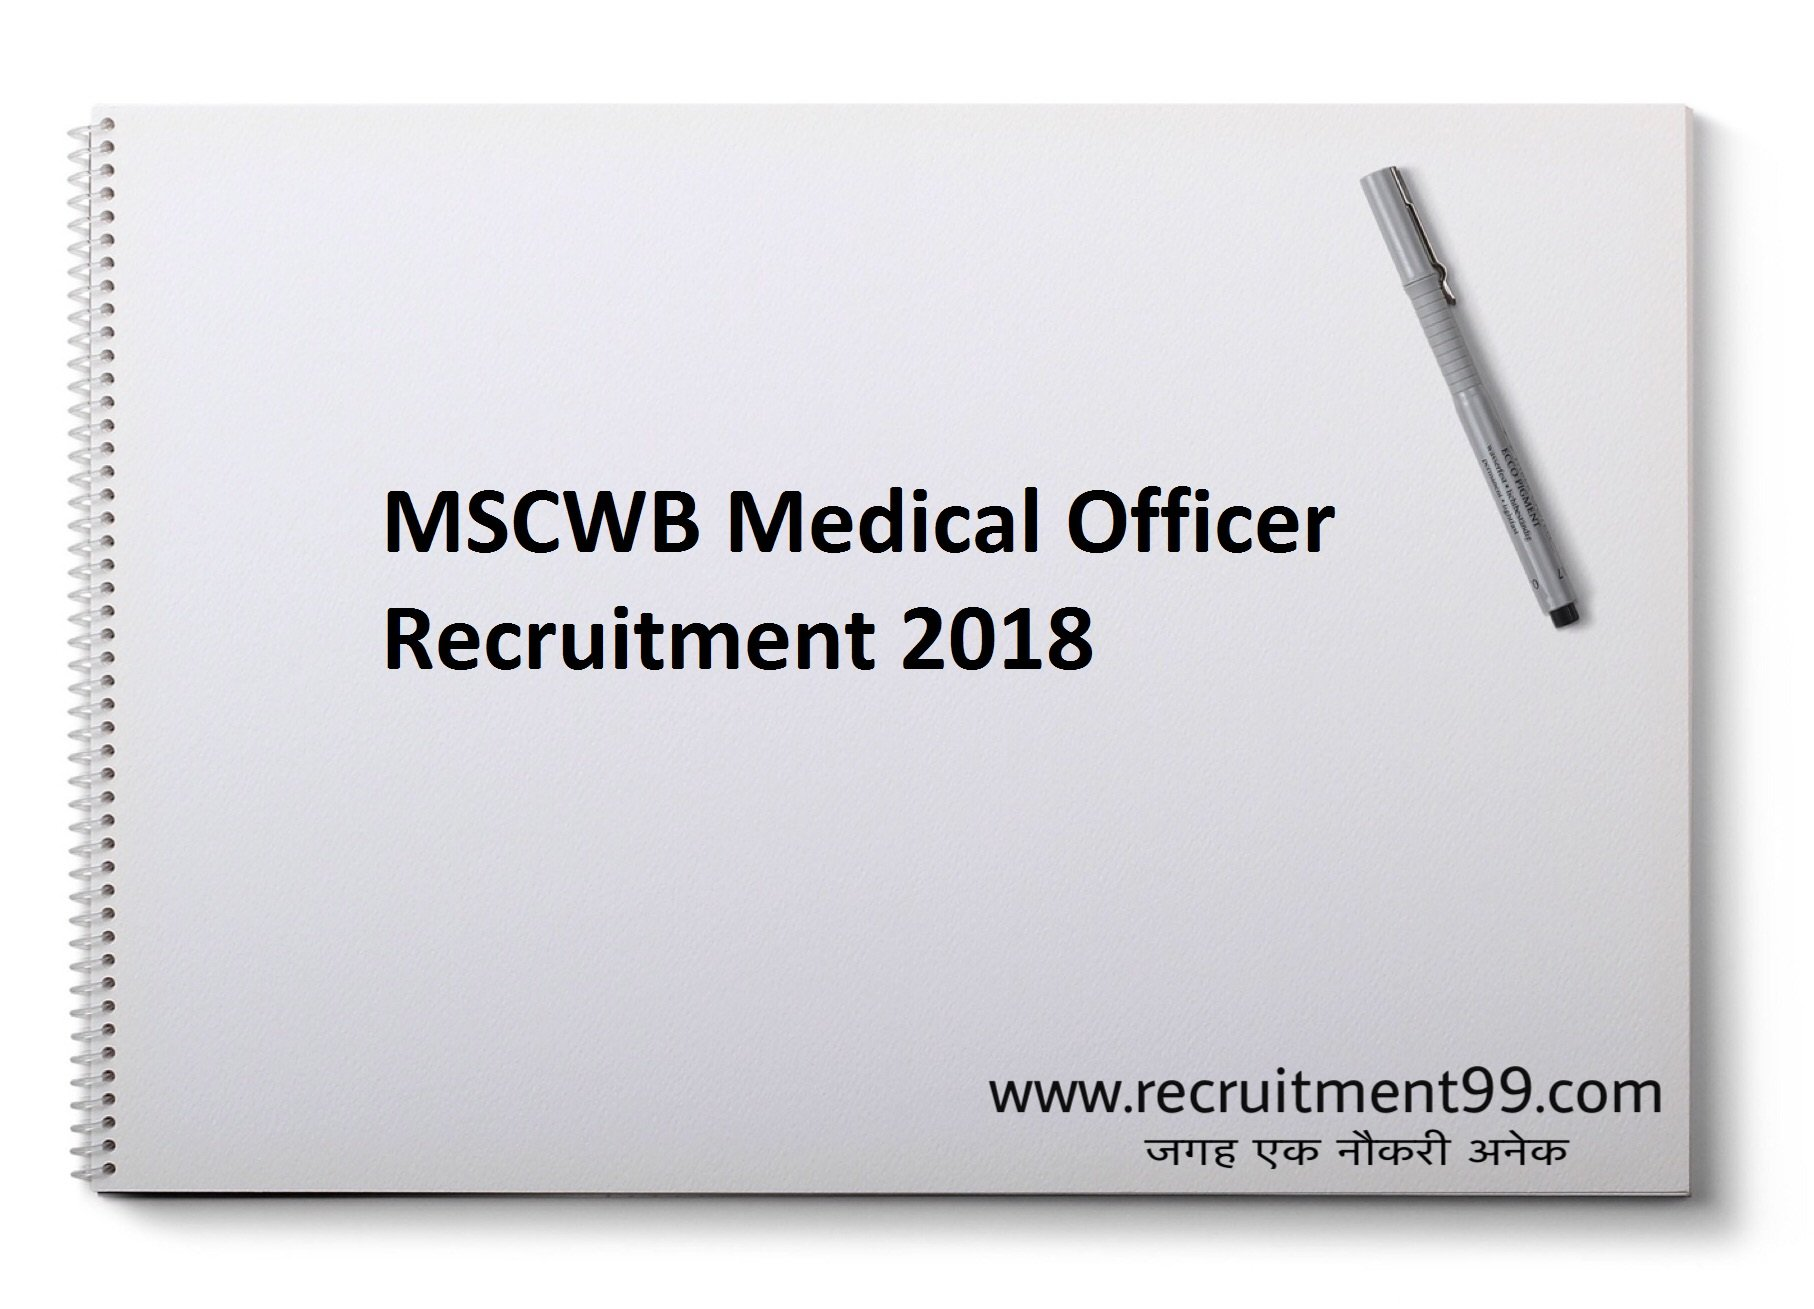 MSCWB Medical Officer Recruitment Admit Card Result 2018